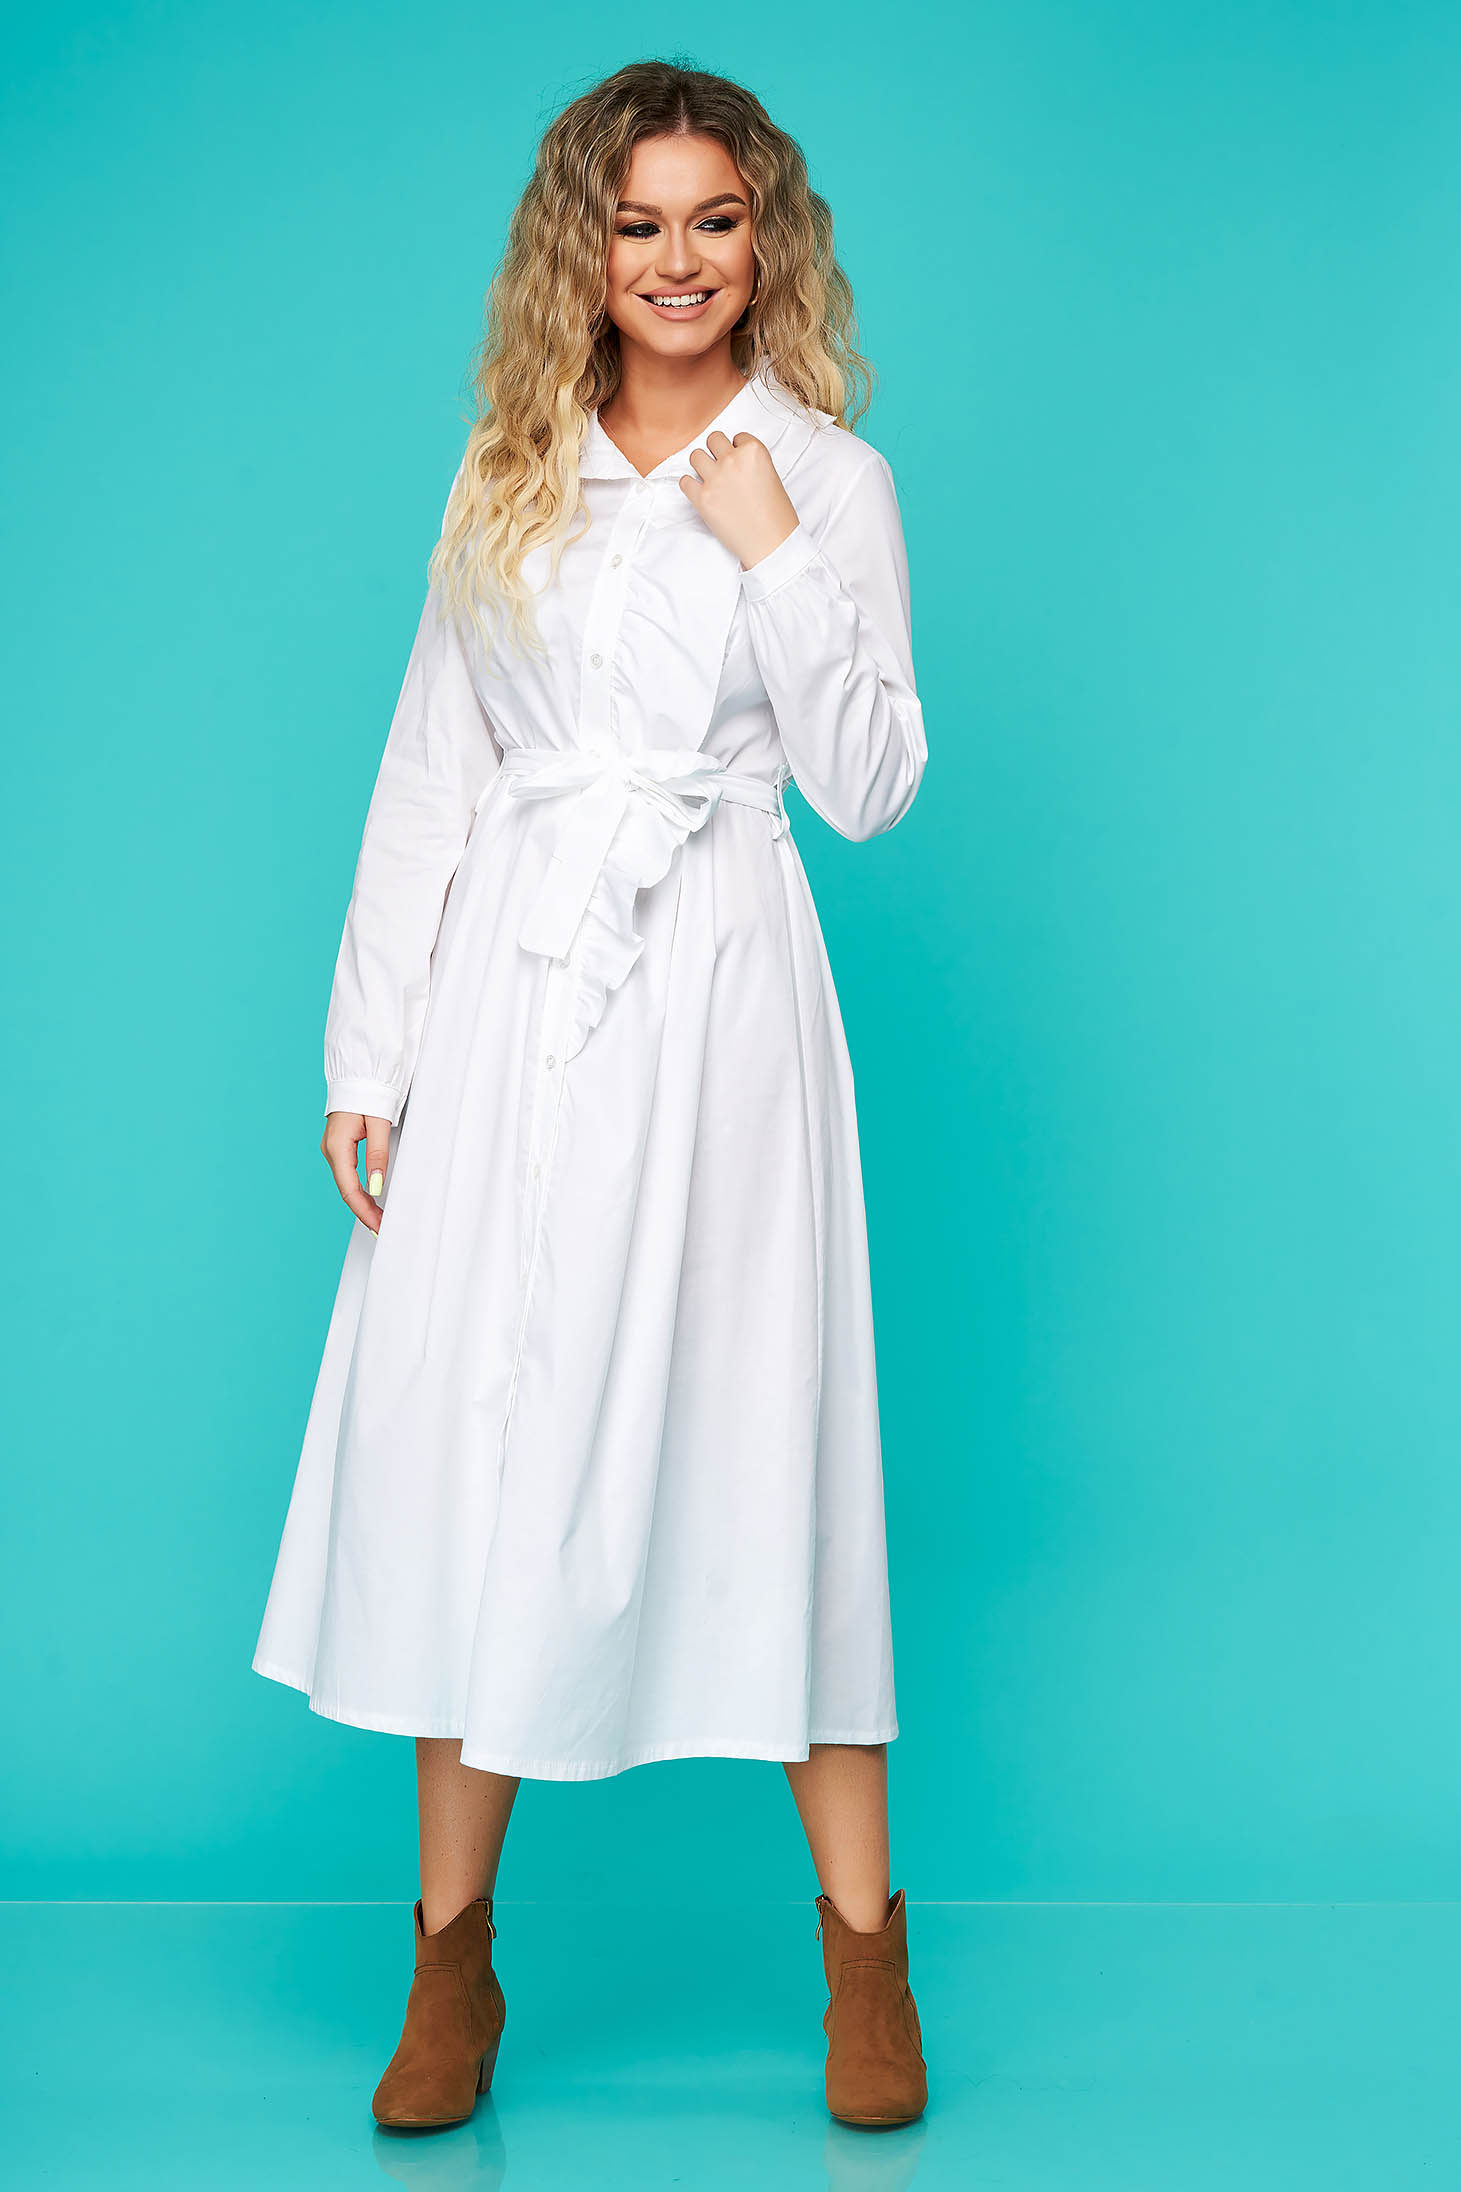 White dress daily cloche with ruffle details accessorized with tied waistband nonelastic cotton